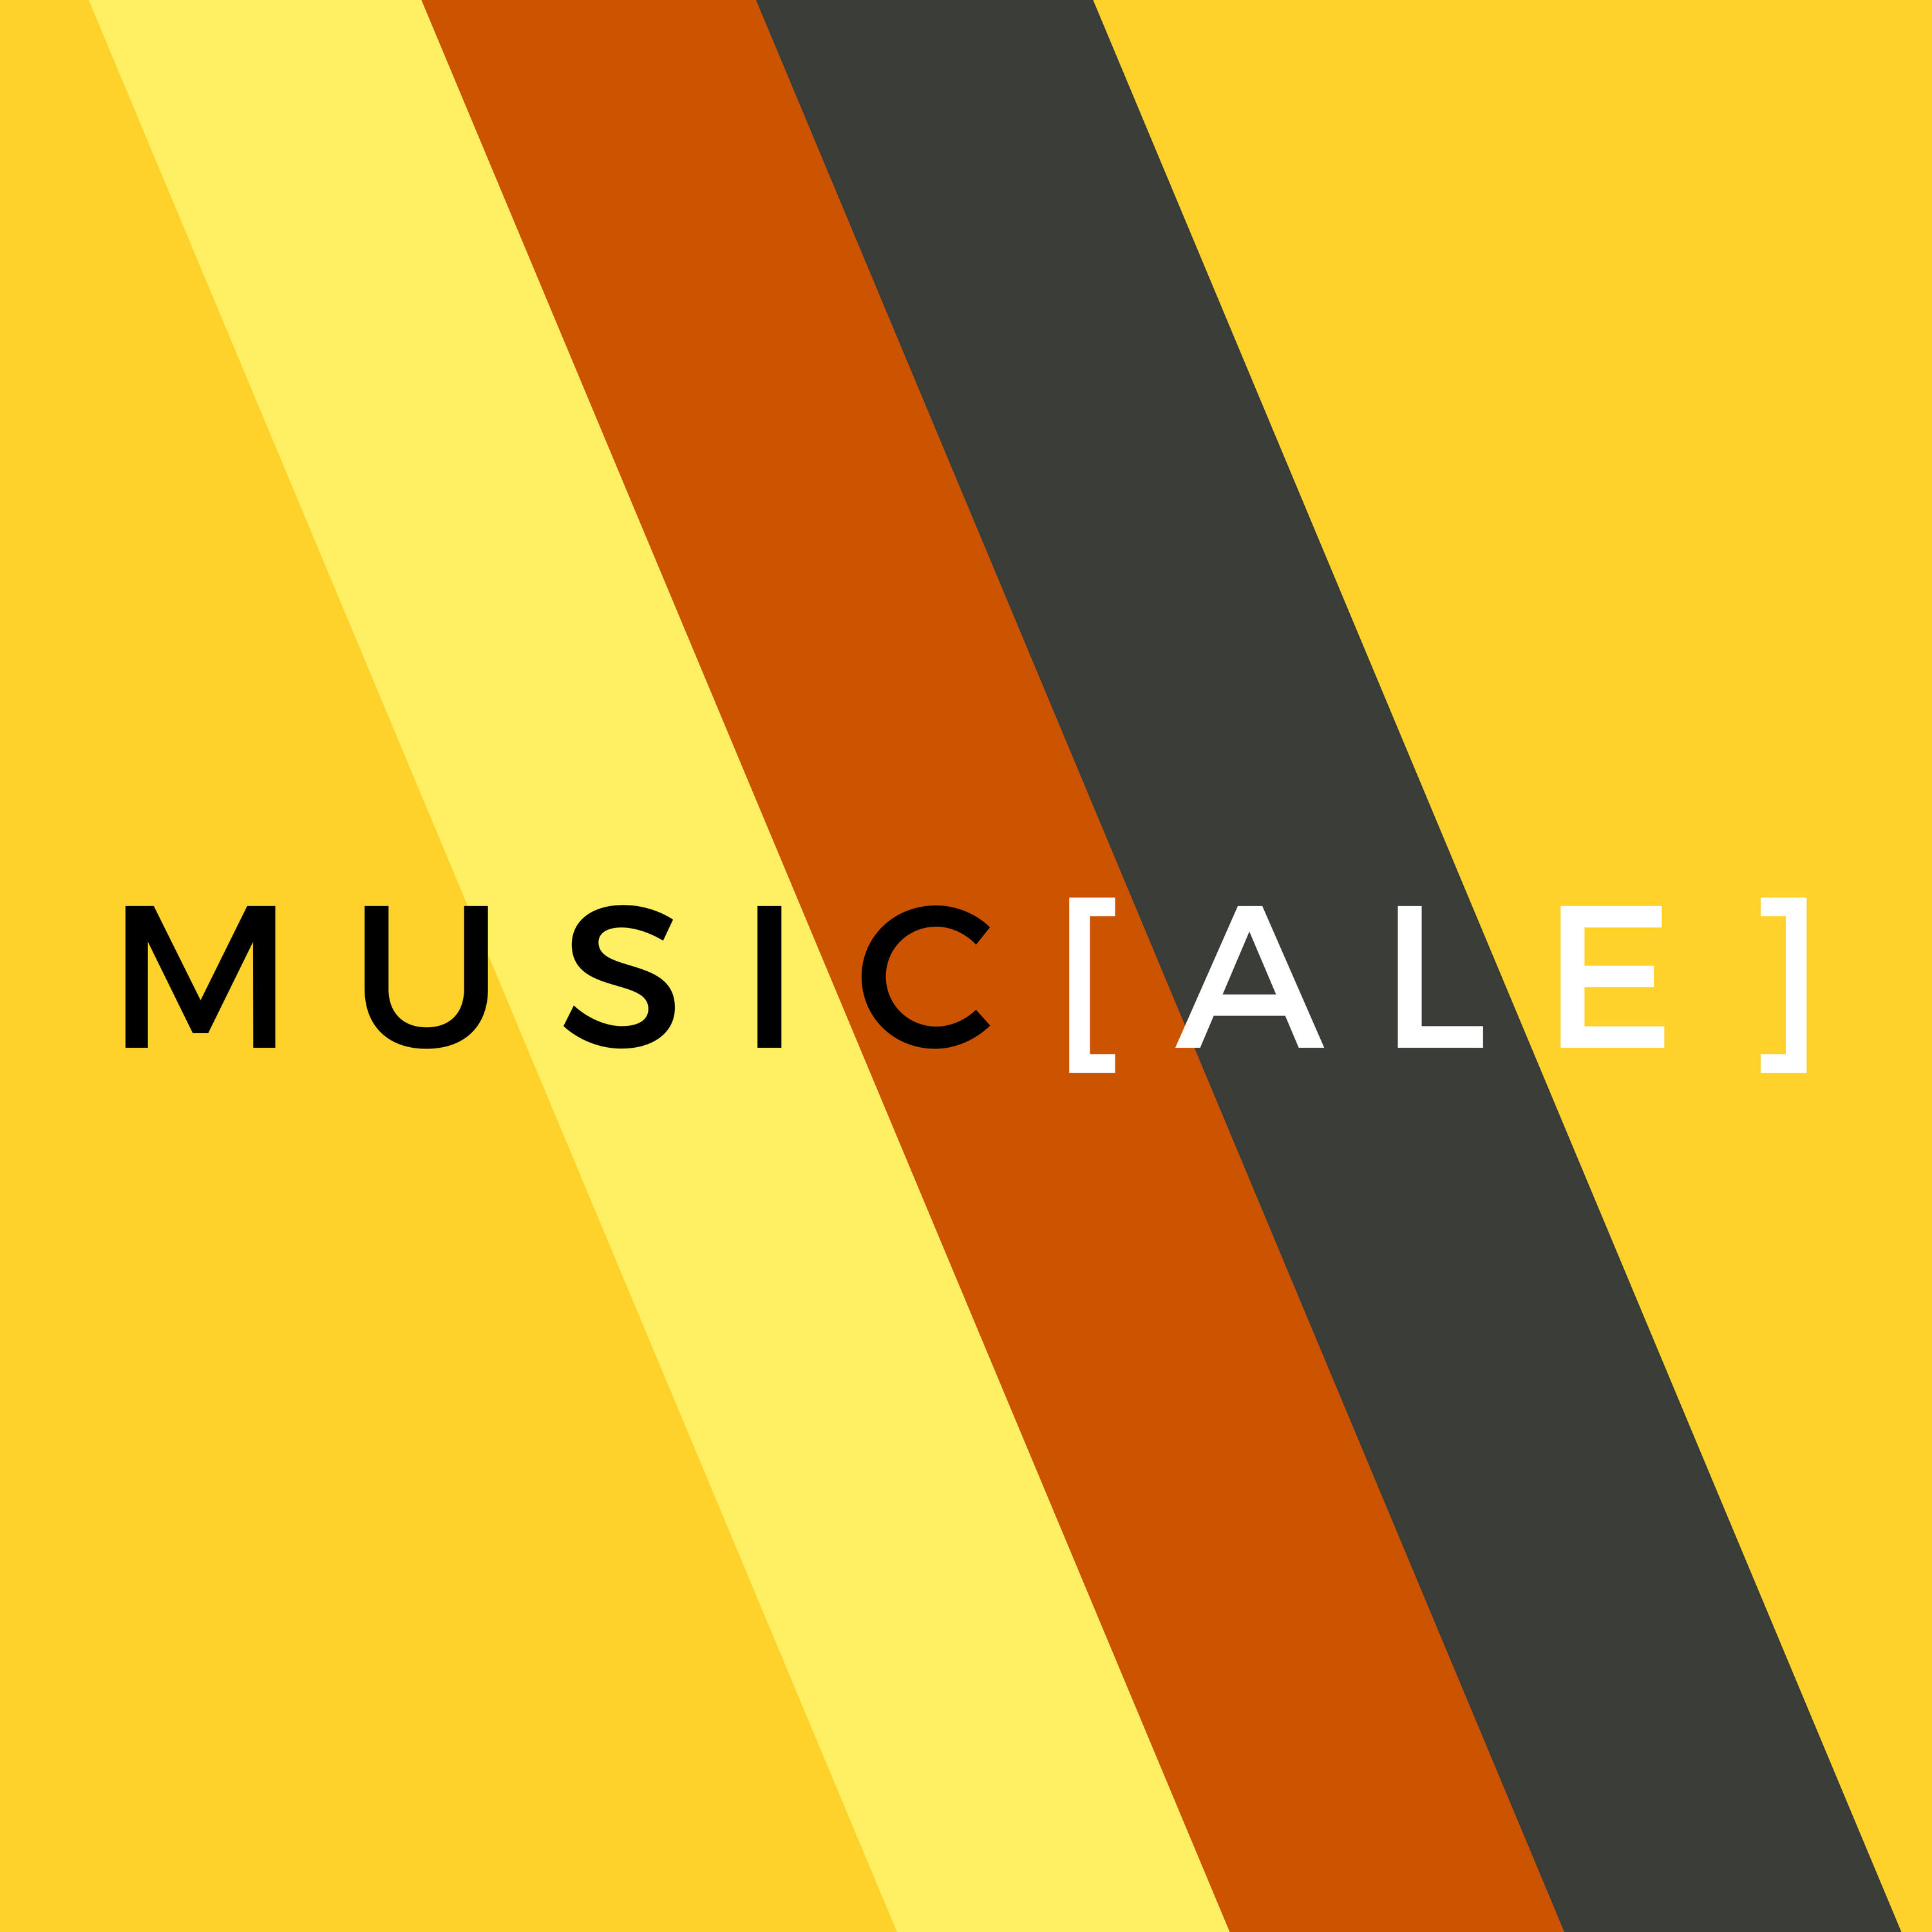 Musicale